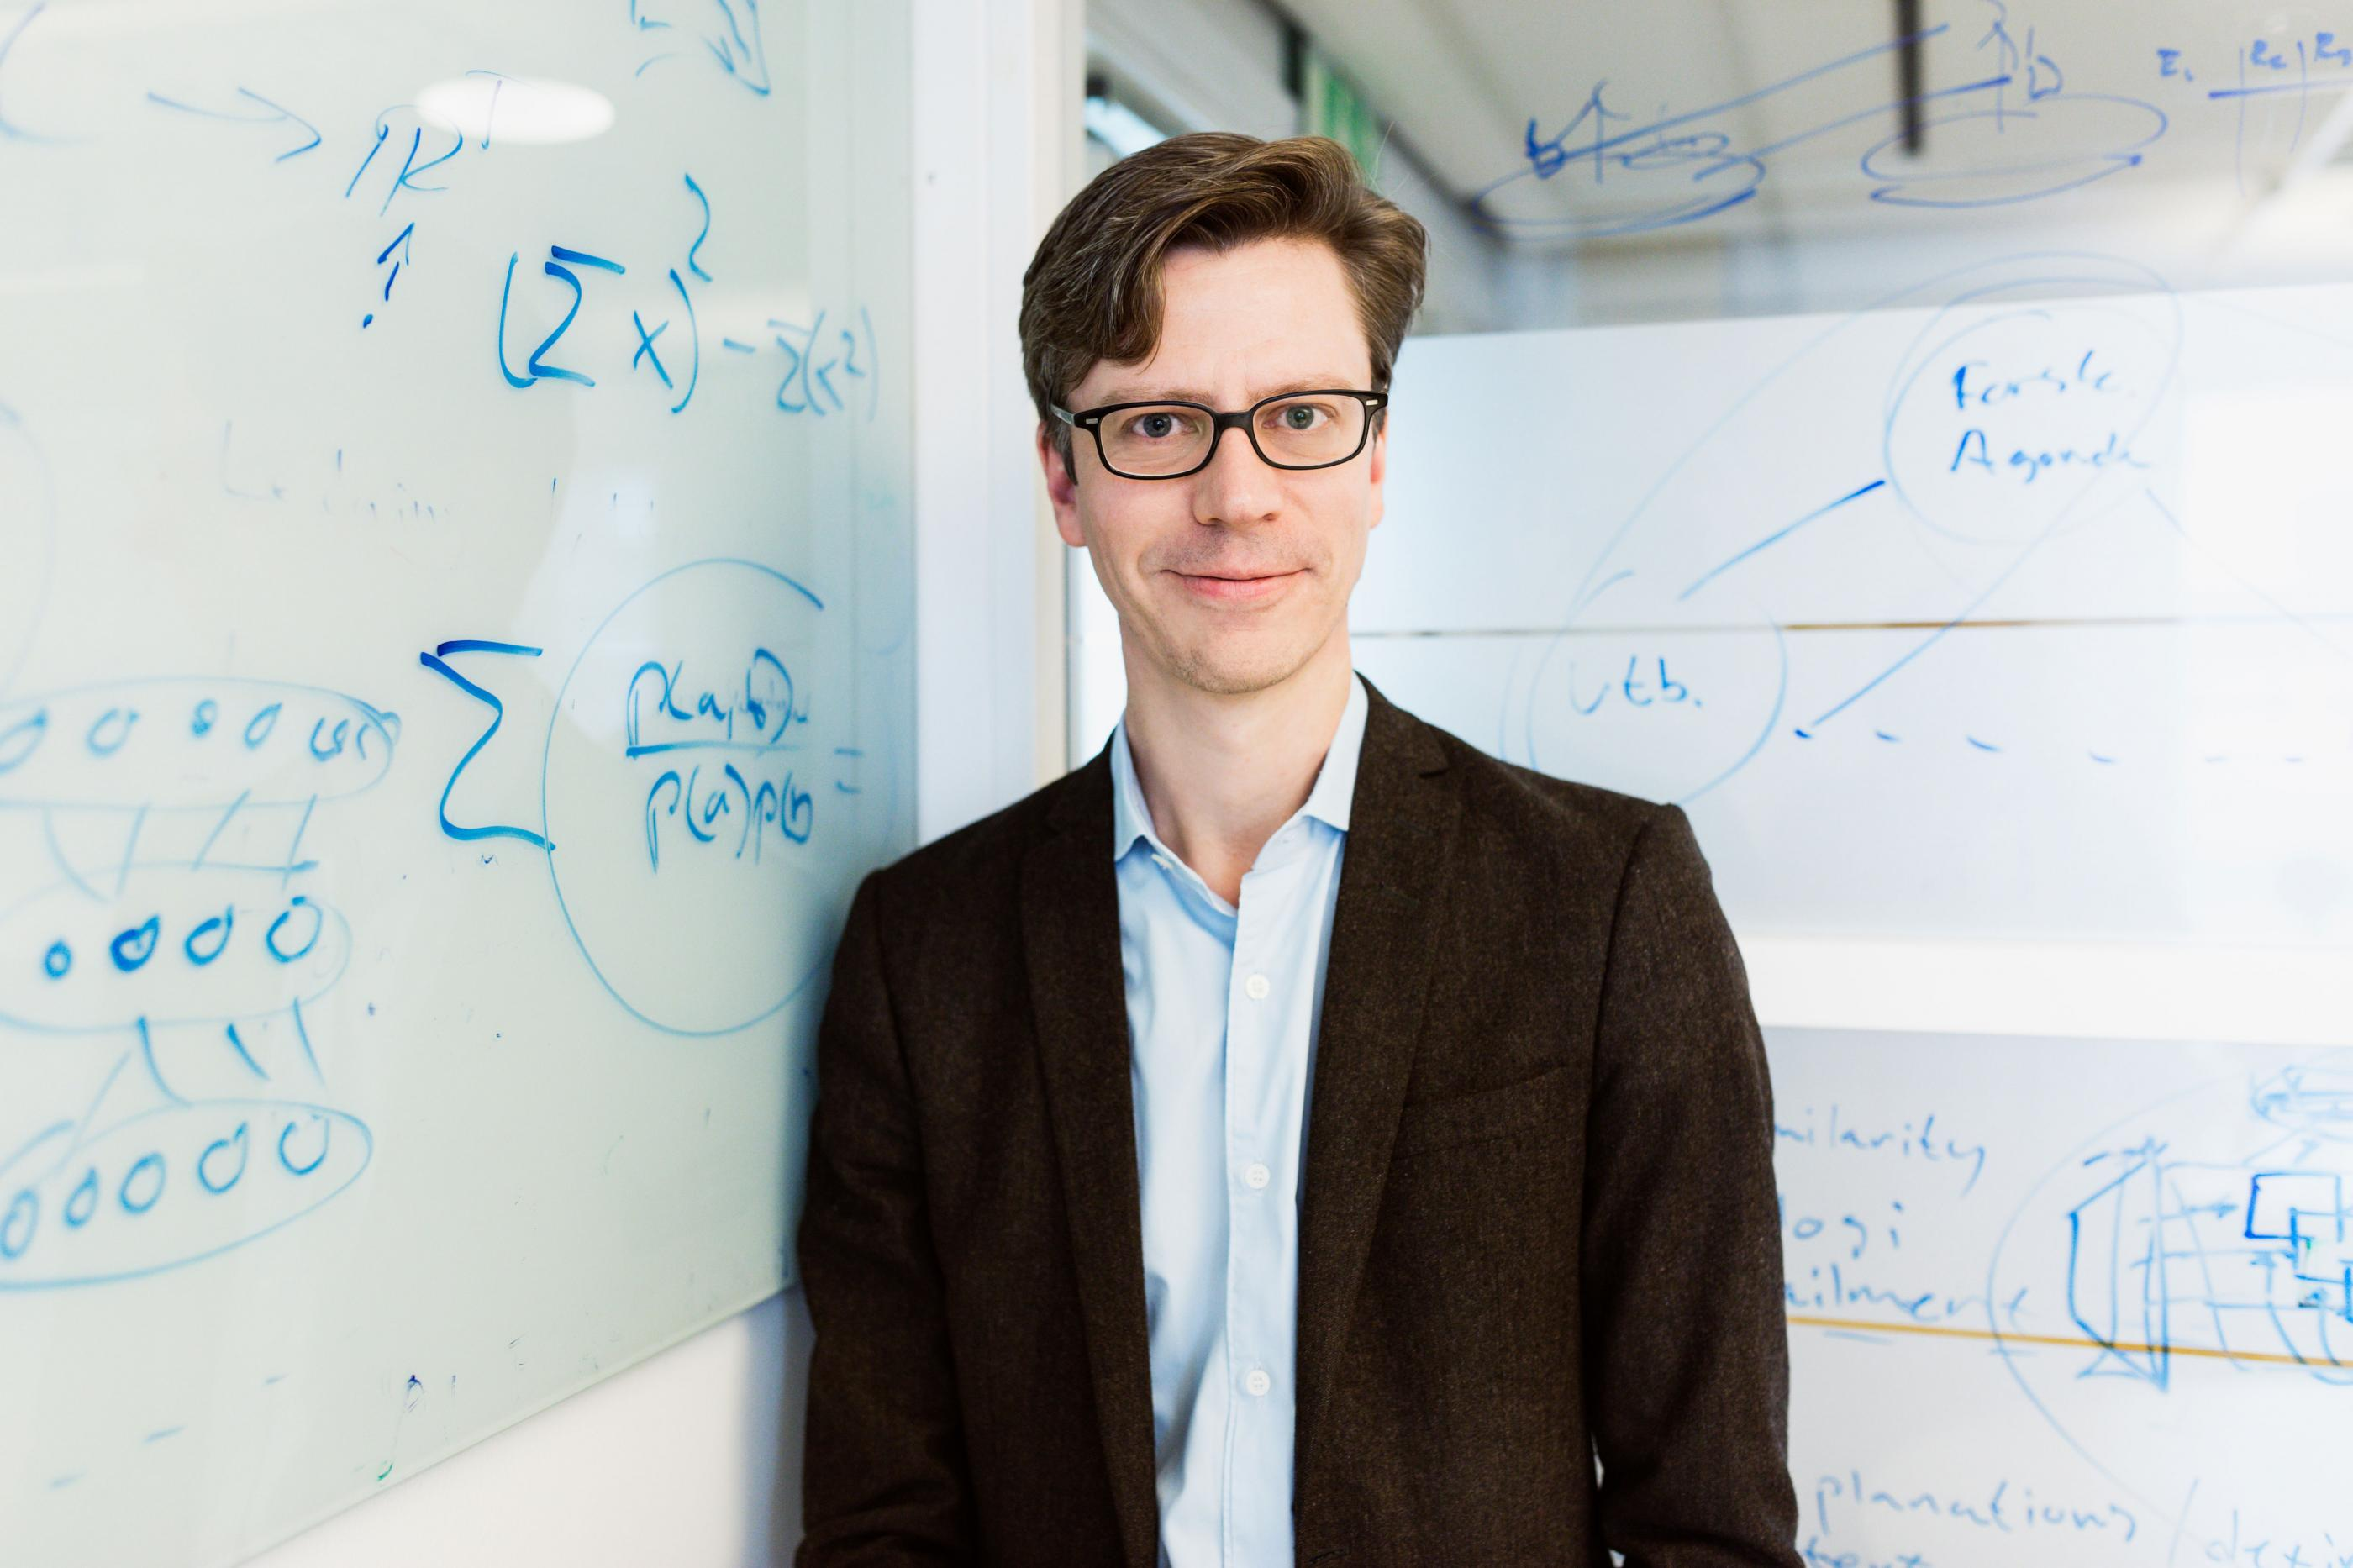 Daniel Gillblad in front of a whiteboard with mathematical calculations